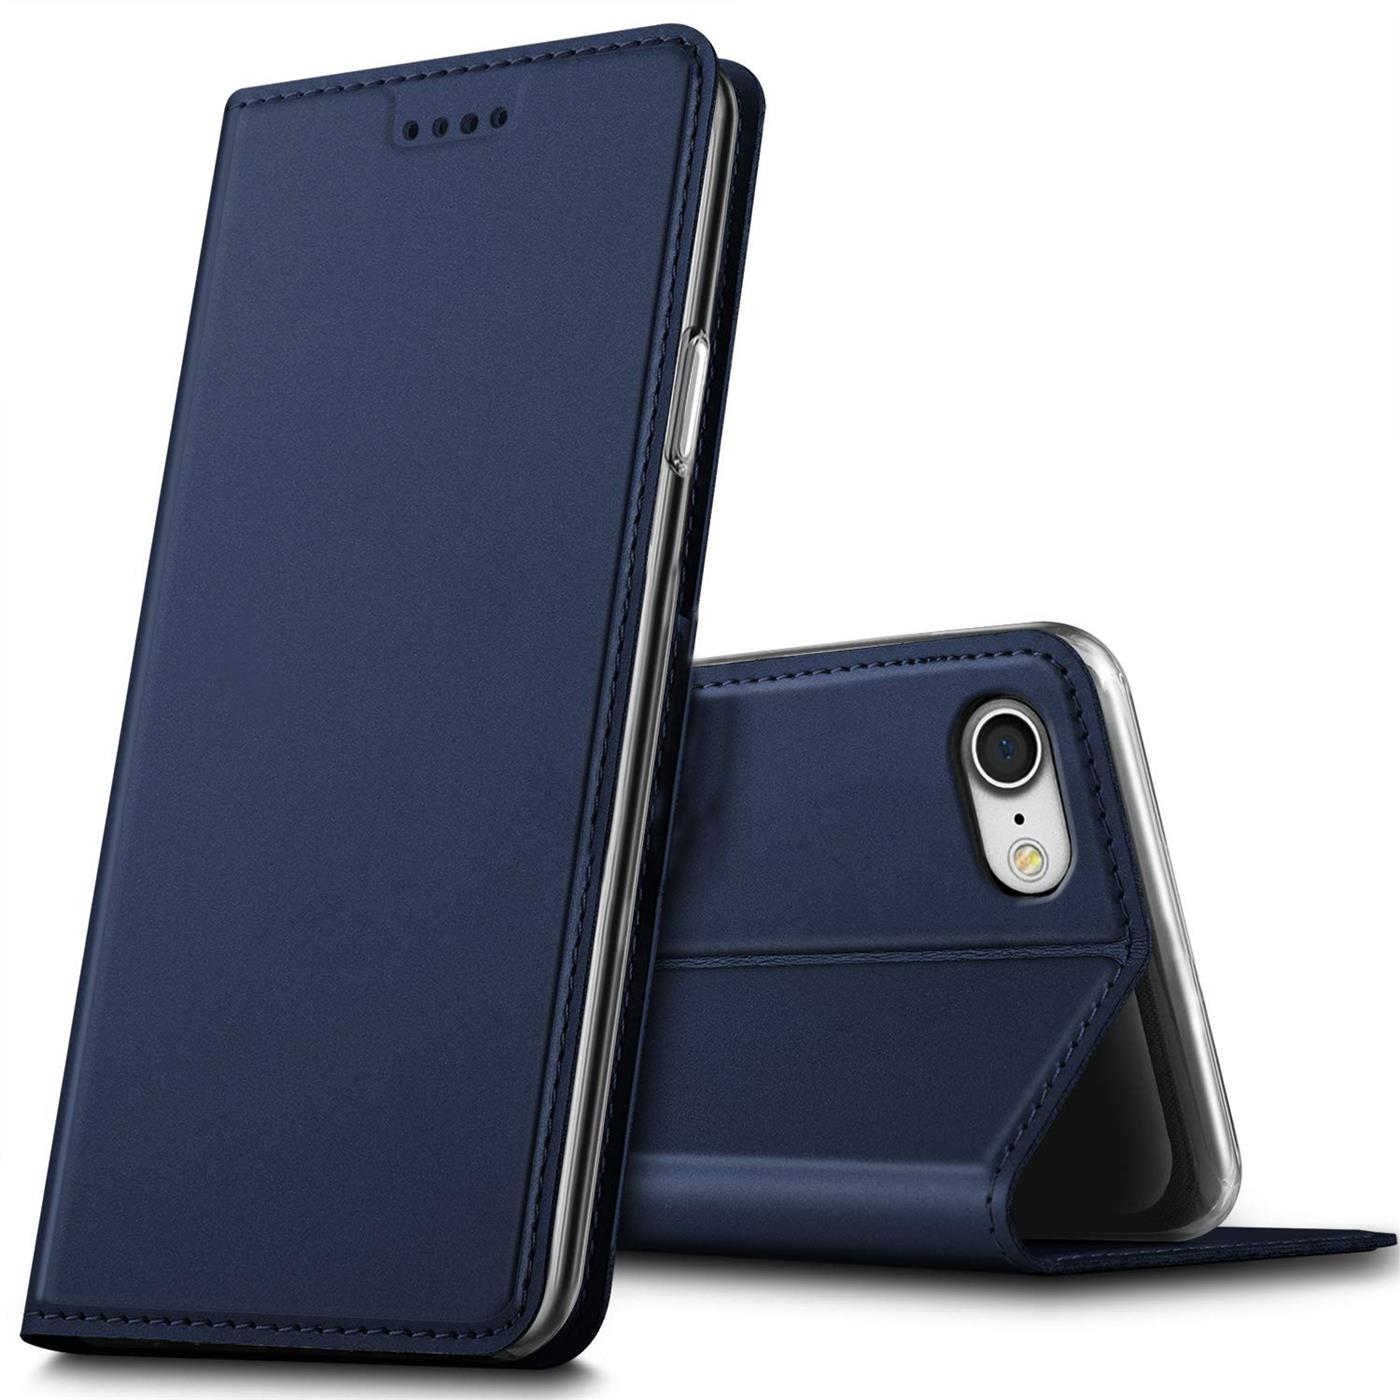 Apple-iPhone-5-5s-SE-Shockproof-Wallet-Slim-Cover-Phone-PU-Leather-Flip-Case thumbnail 10